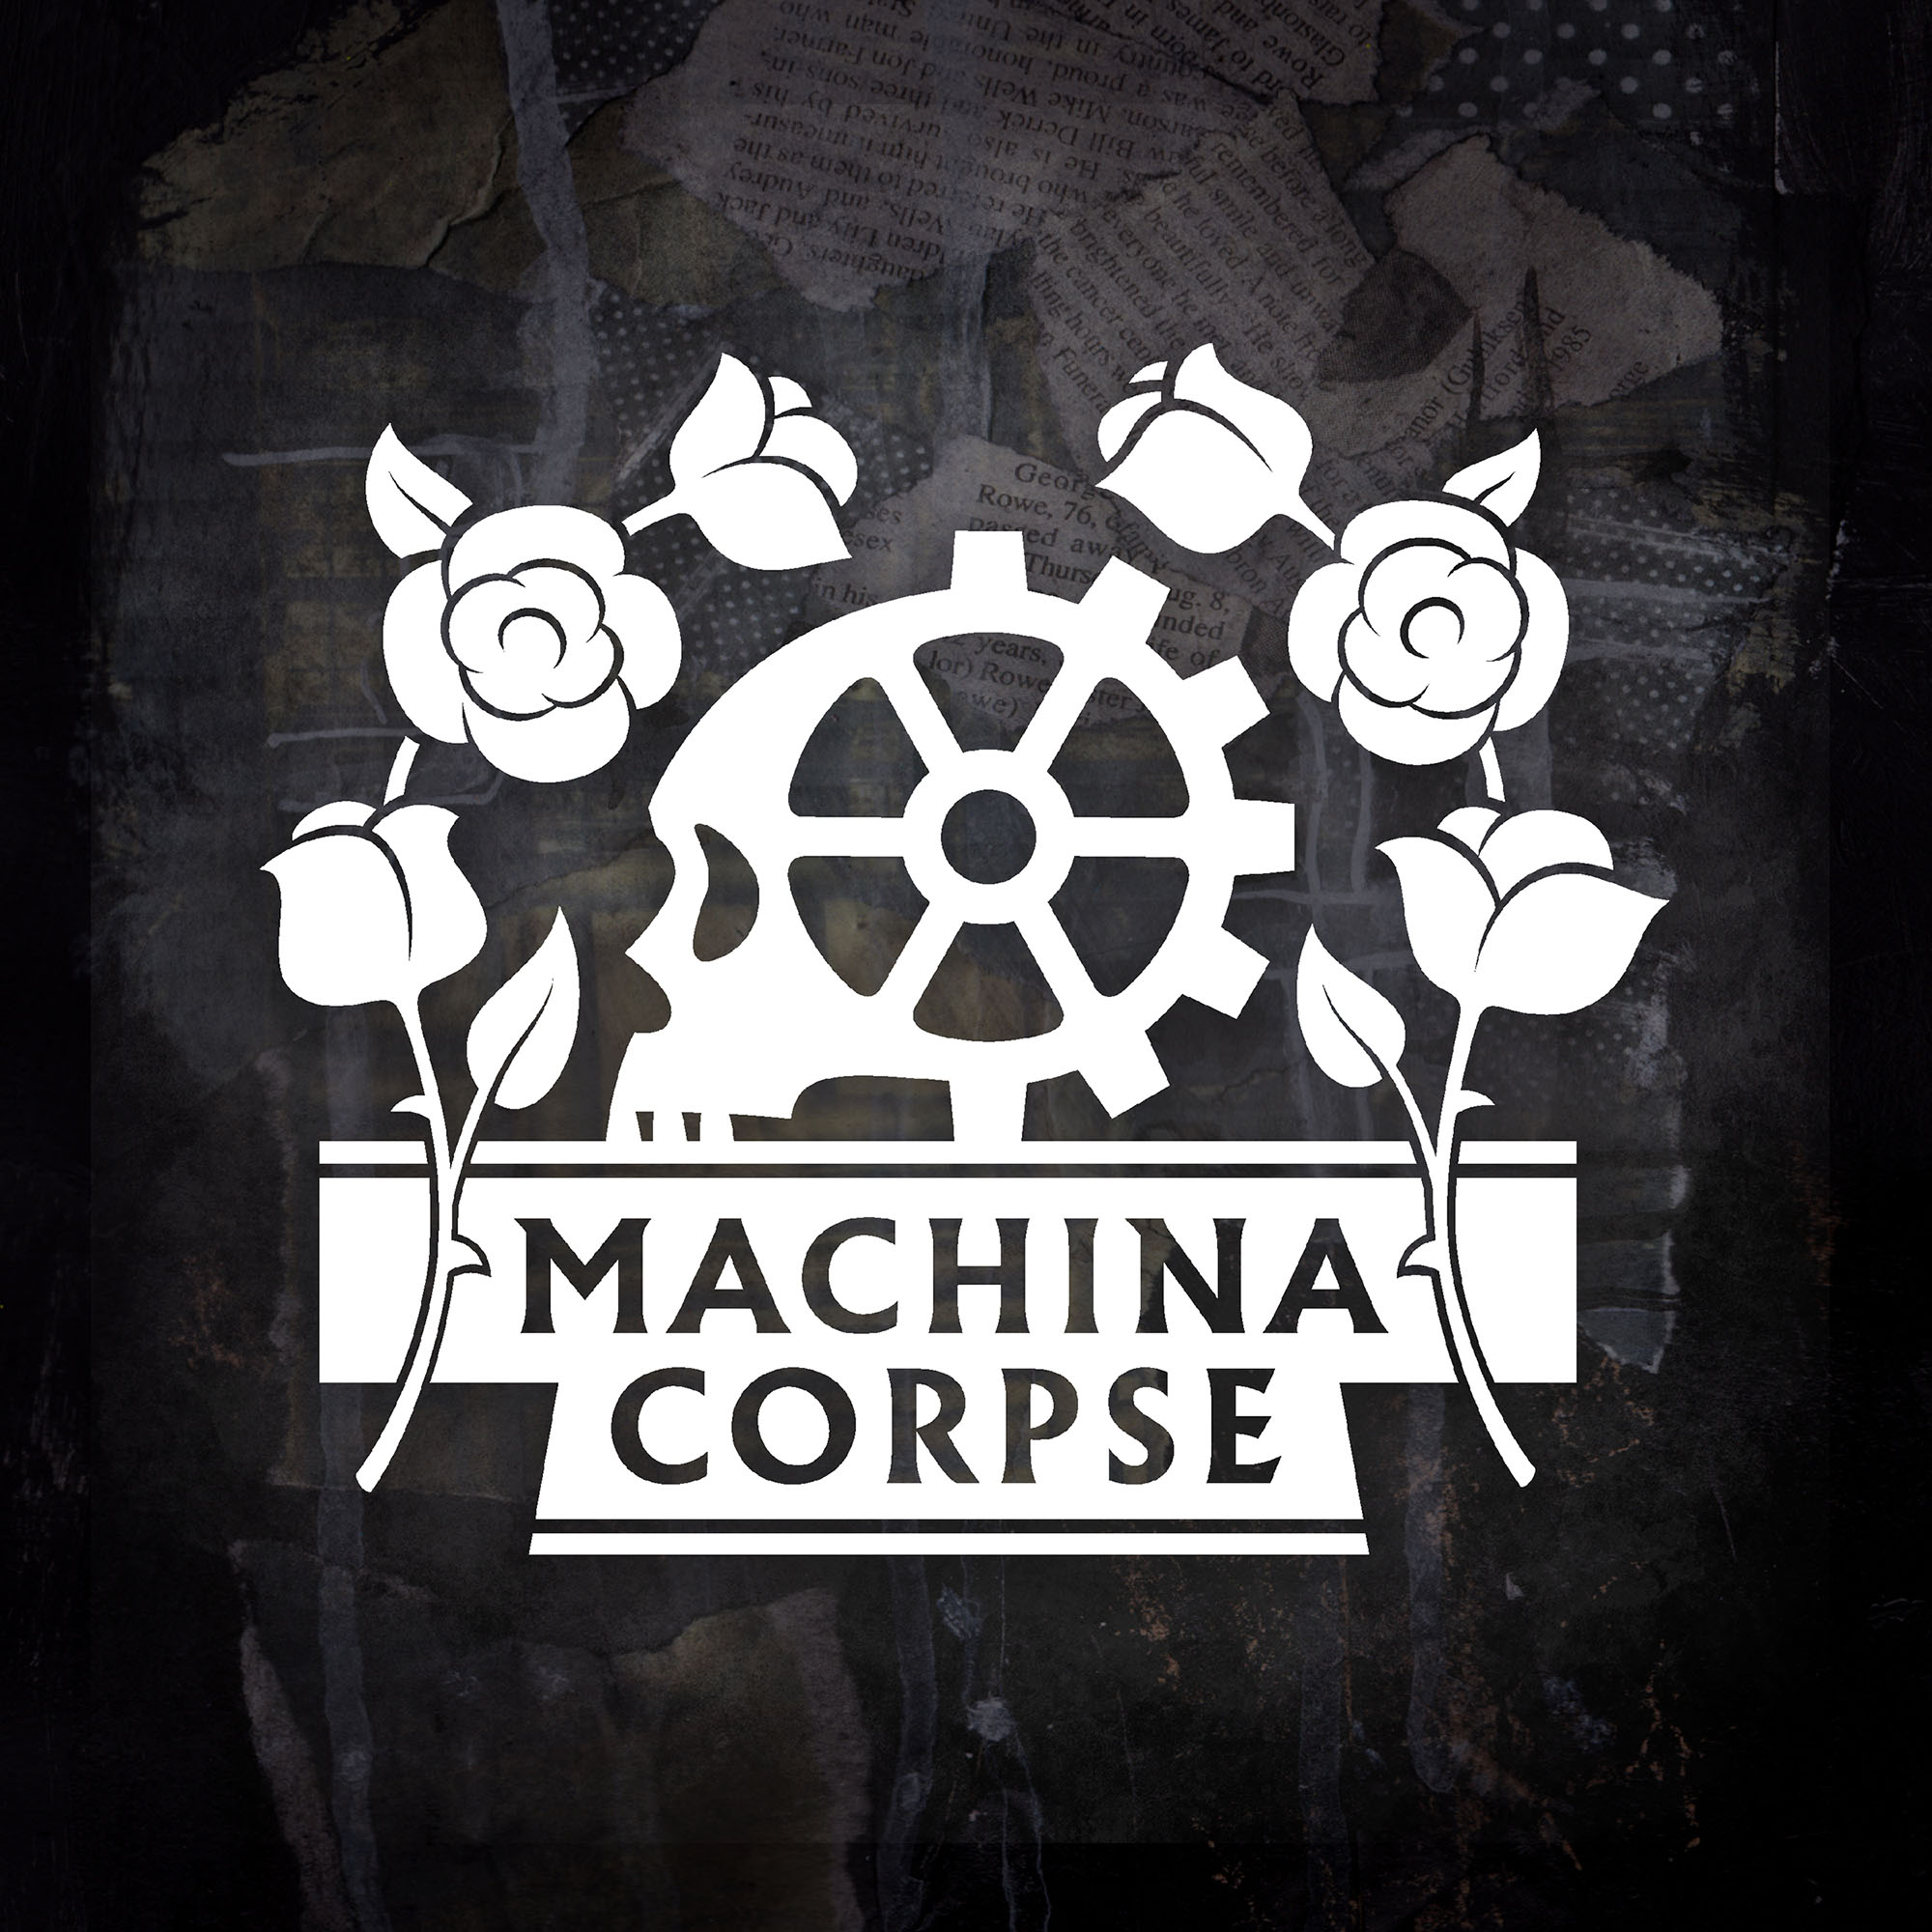 MACHINA CORPSE